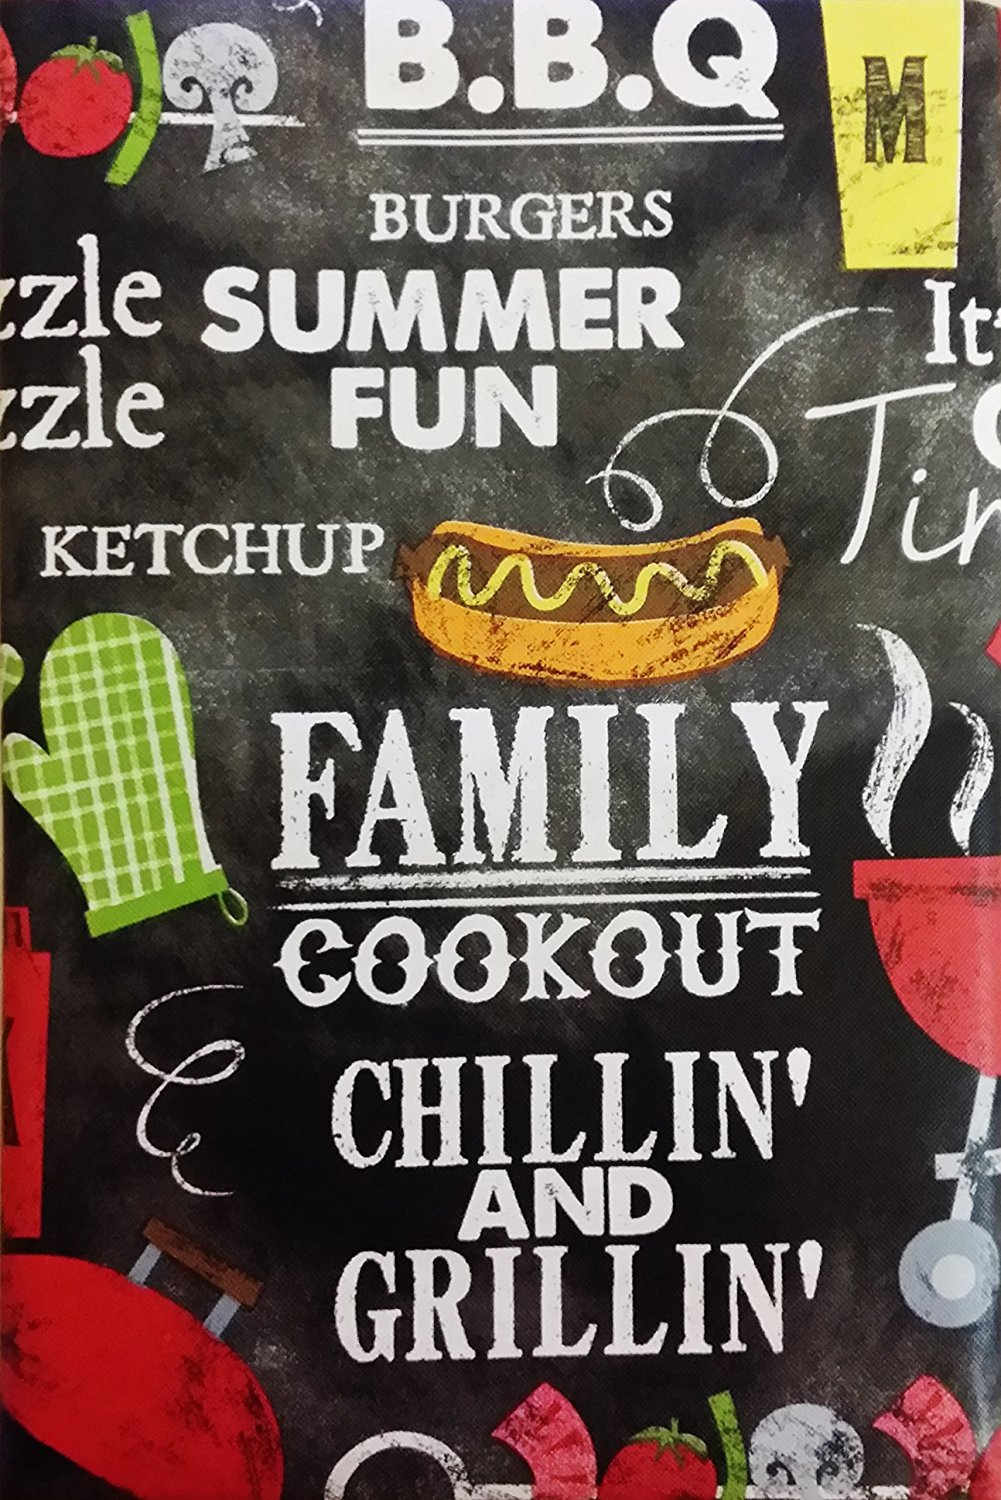 "Summer Fun Chillin' and Grillin' Cookout BBQ Vinyl Flannel Back Tablecloth (52"" x 70"" Oblong)"